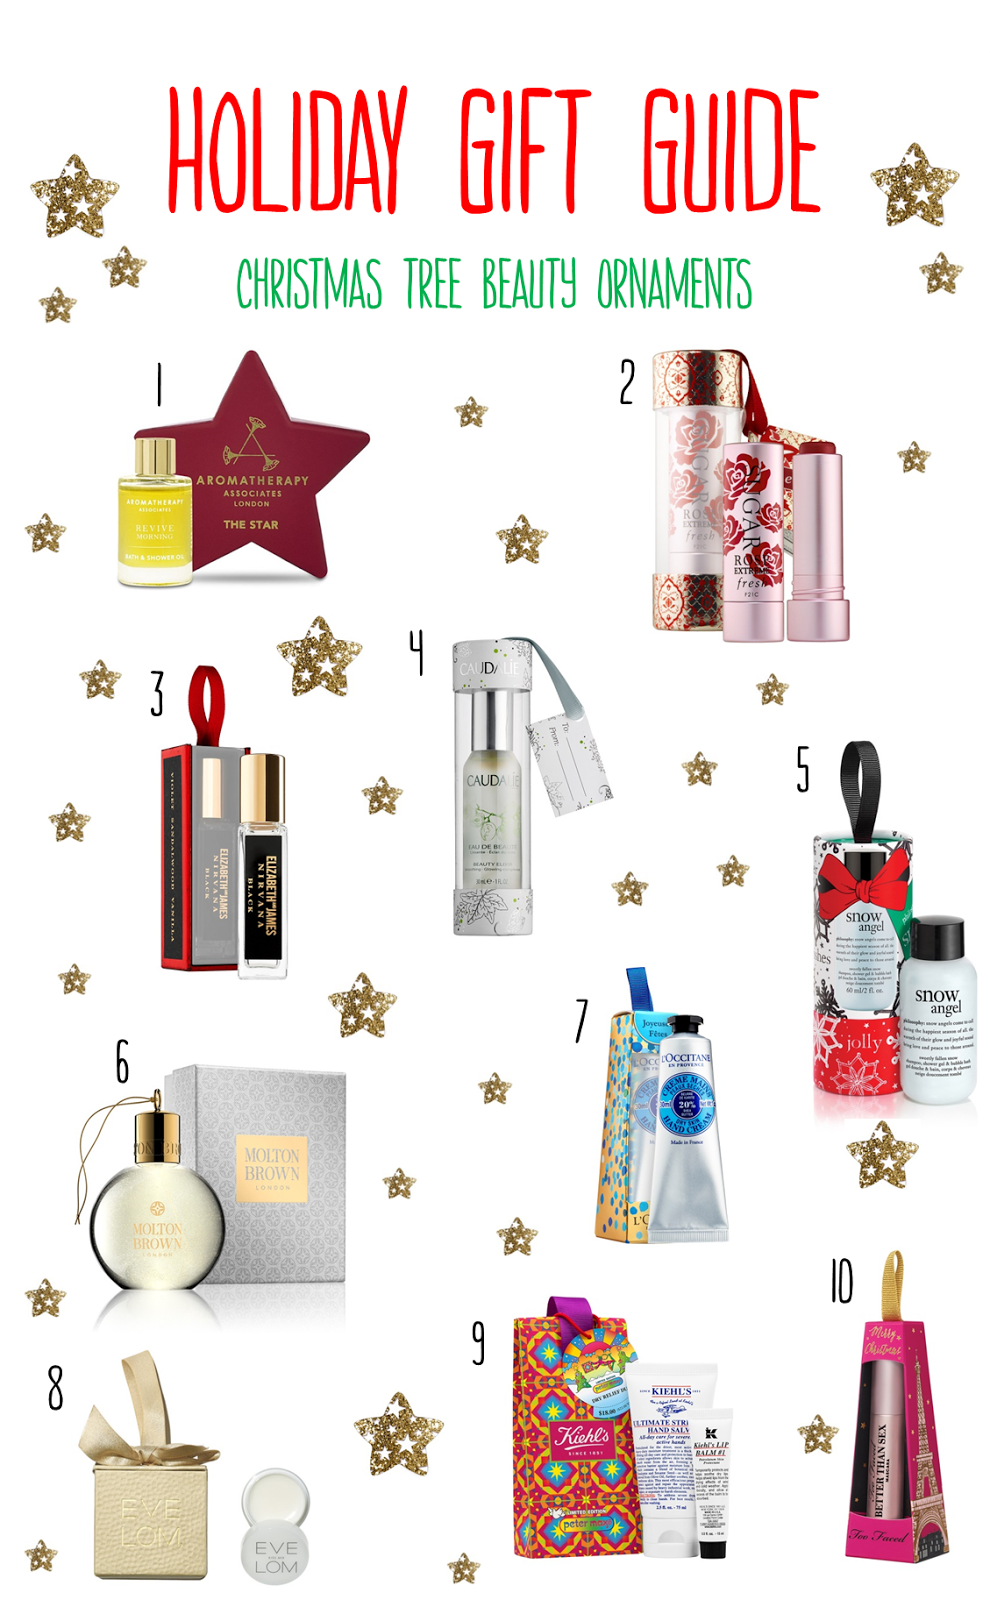 Holiday Gift Guide | Christmas Tree Beauty Ornaments